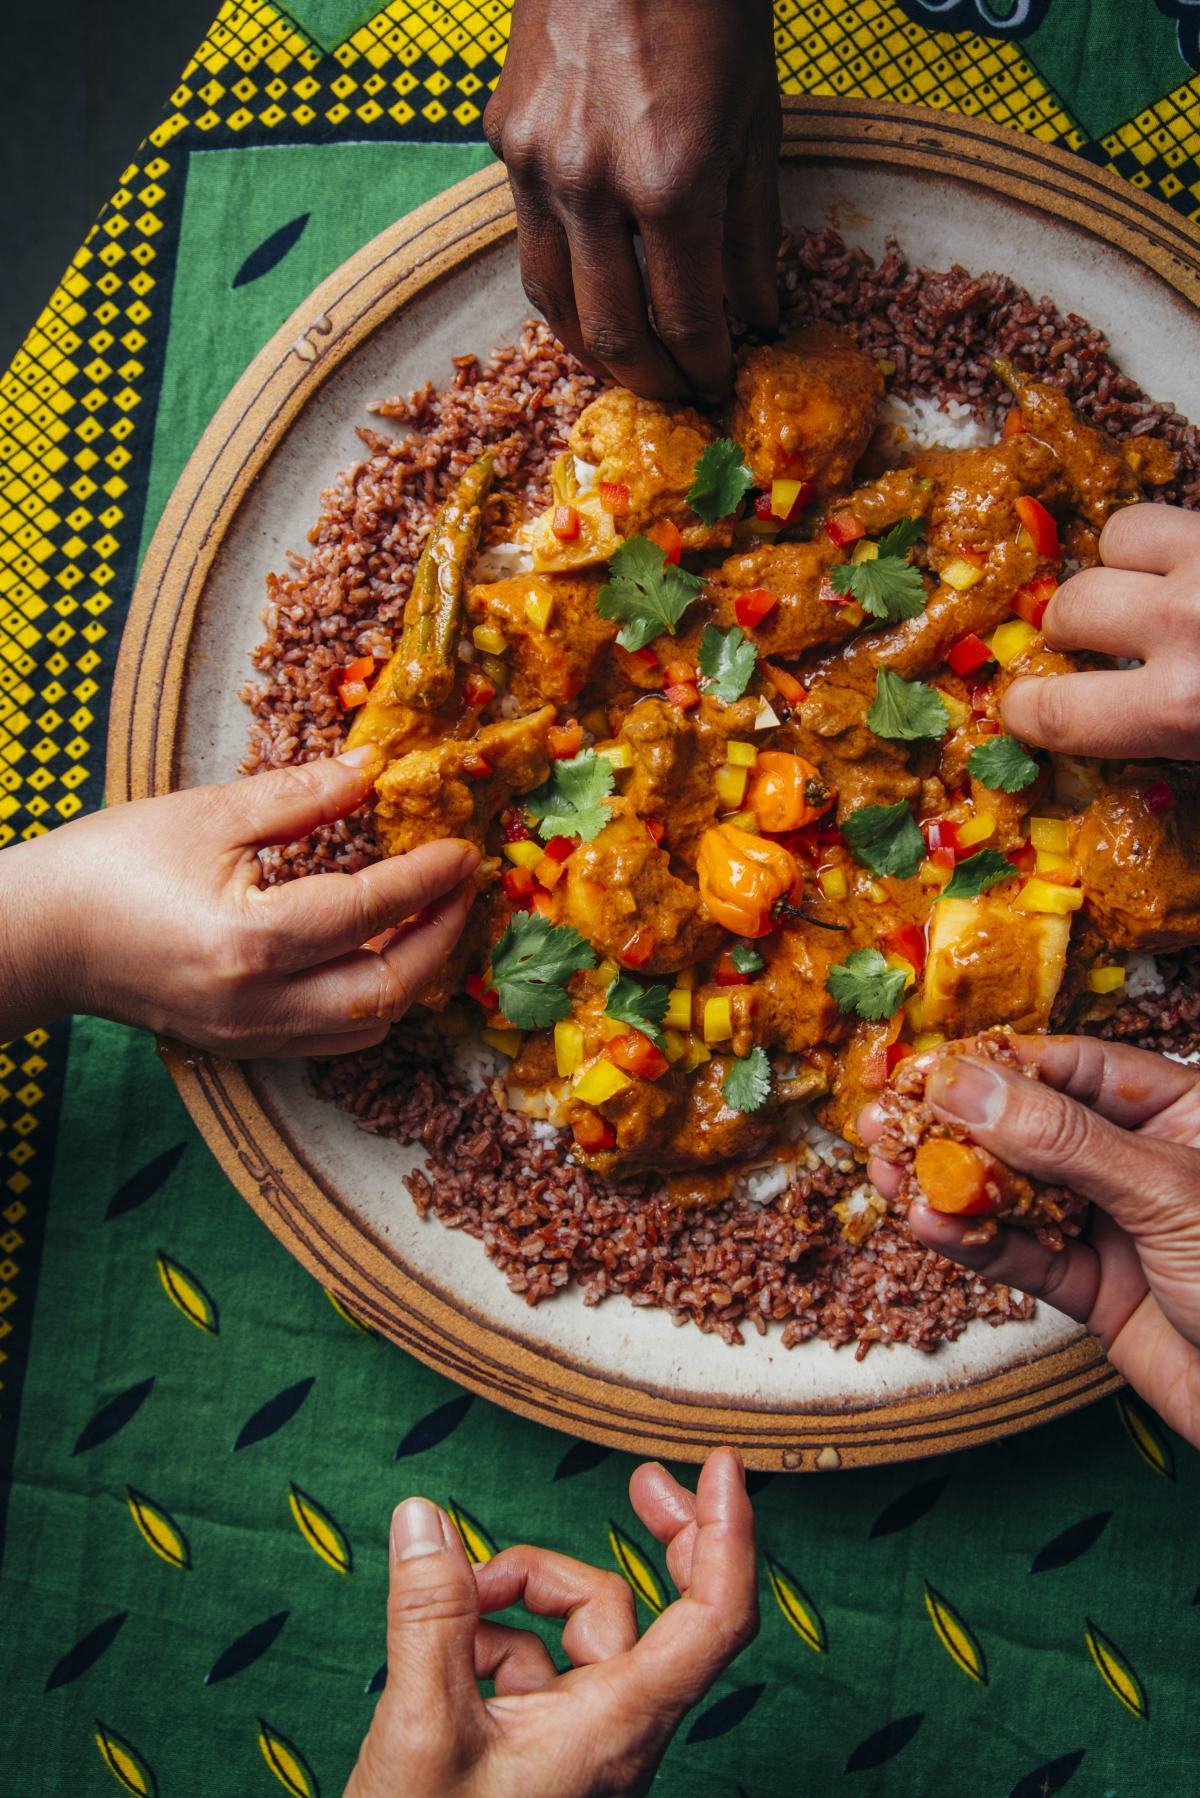 Mafé is a peanut stew that Nafy Flatley started cooking when she was 8 in Senegal. She is the owner of Teranga, a beverage company she founded with help from La Cocina.